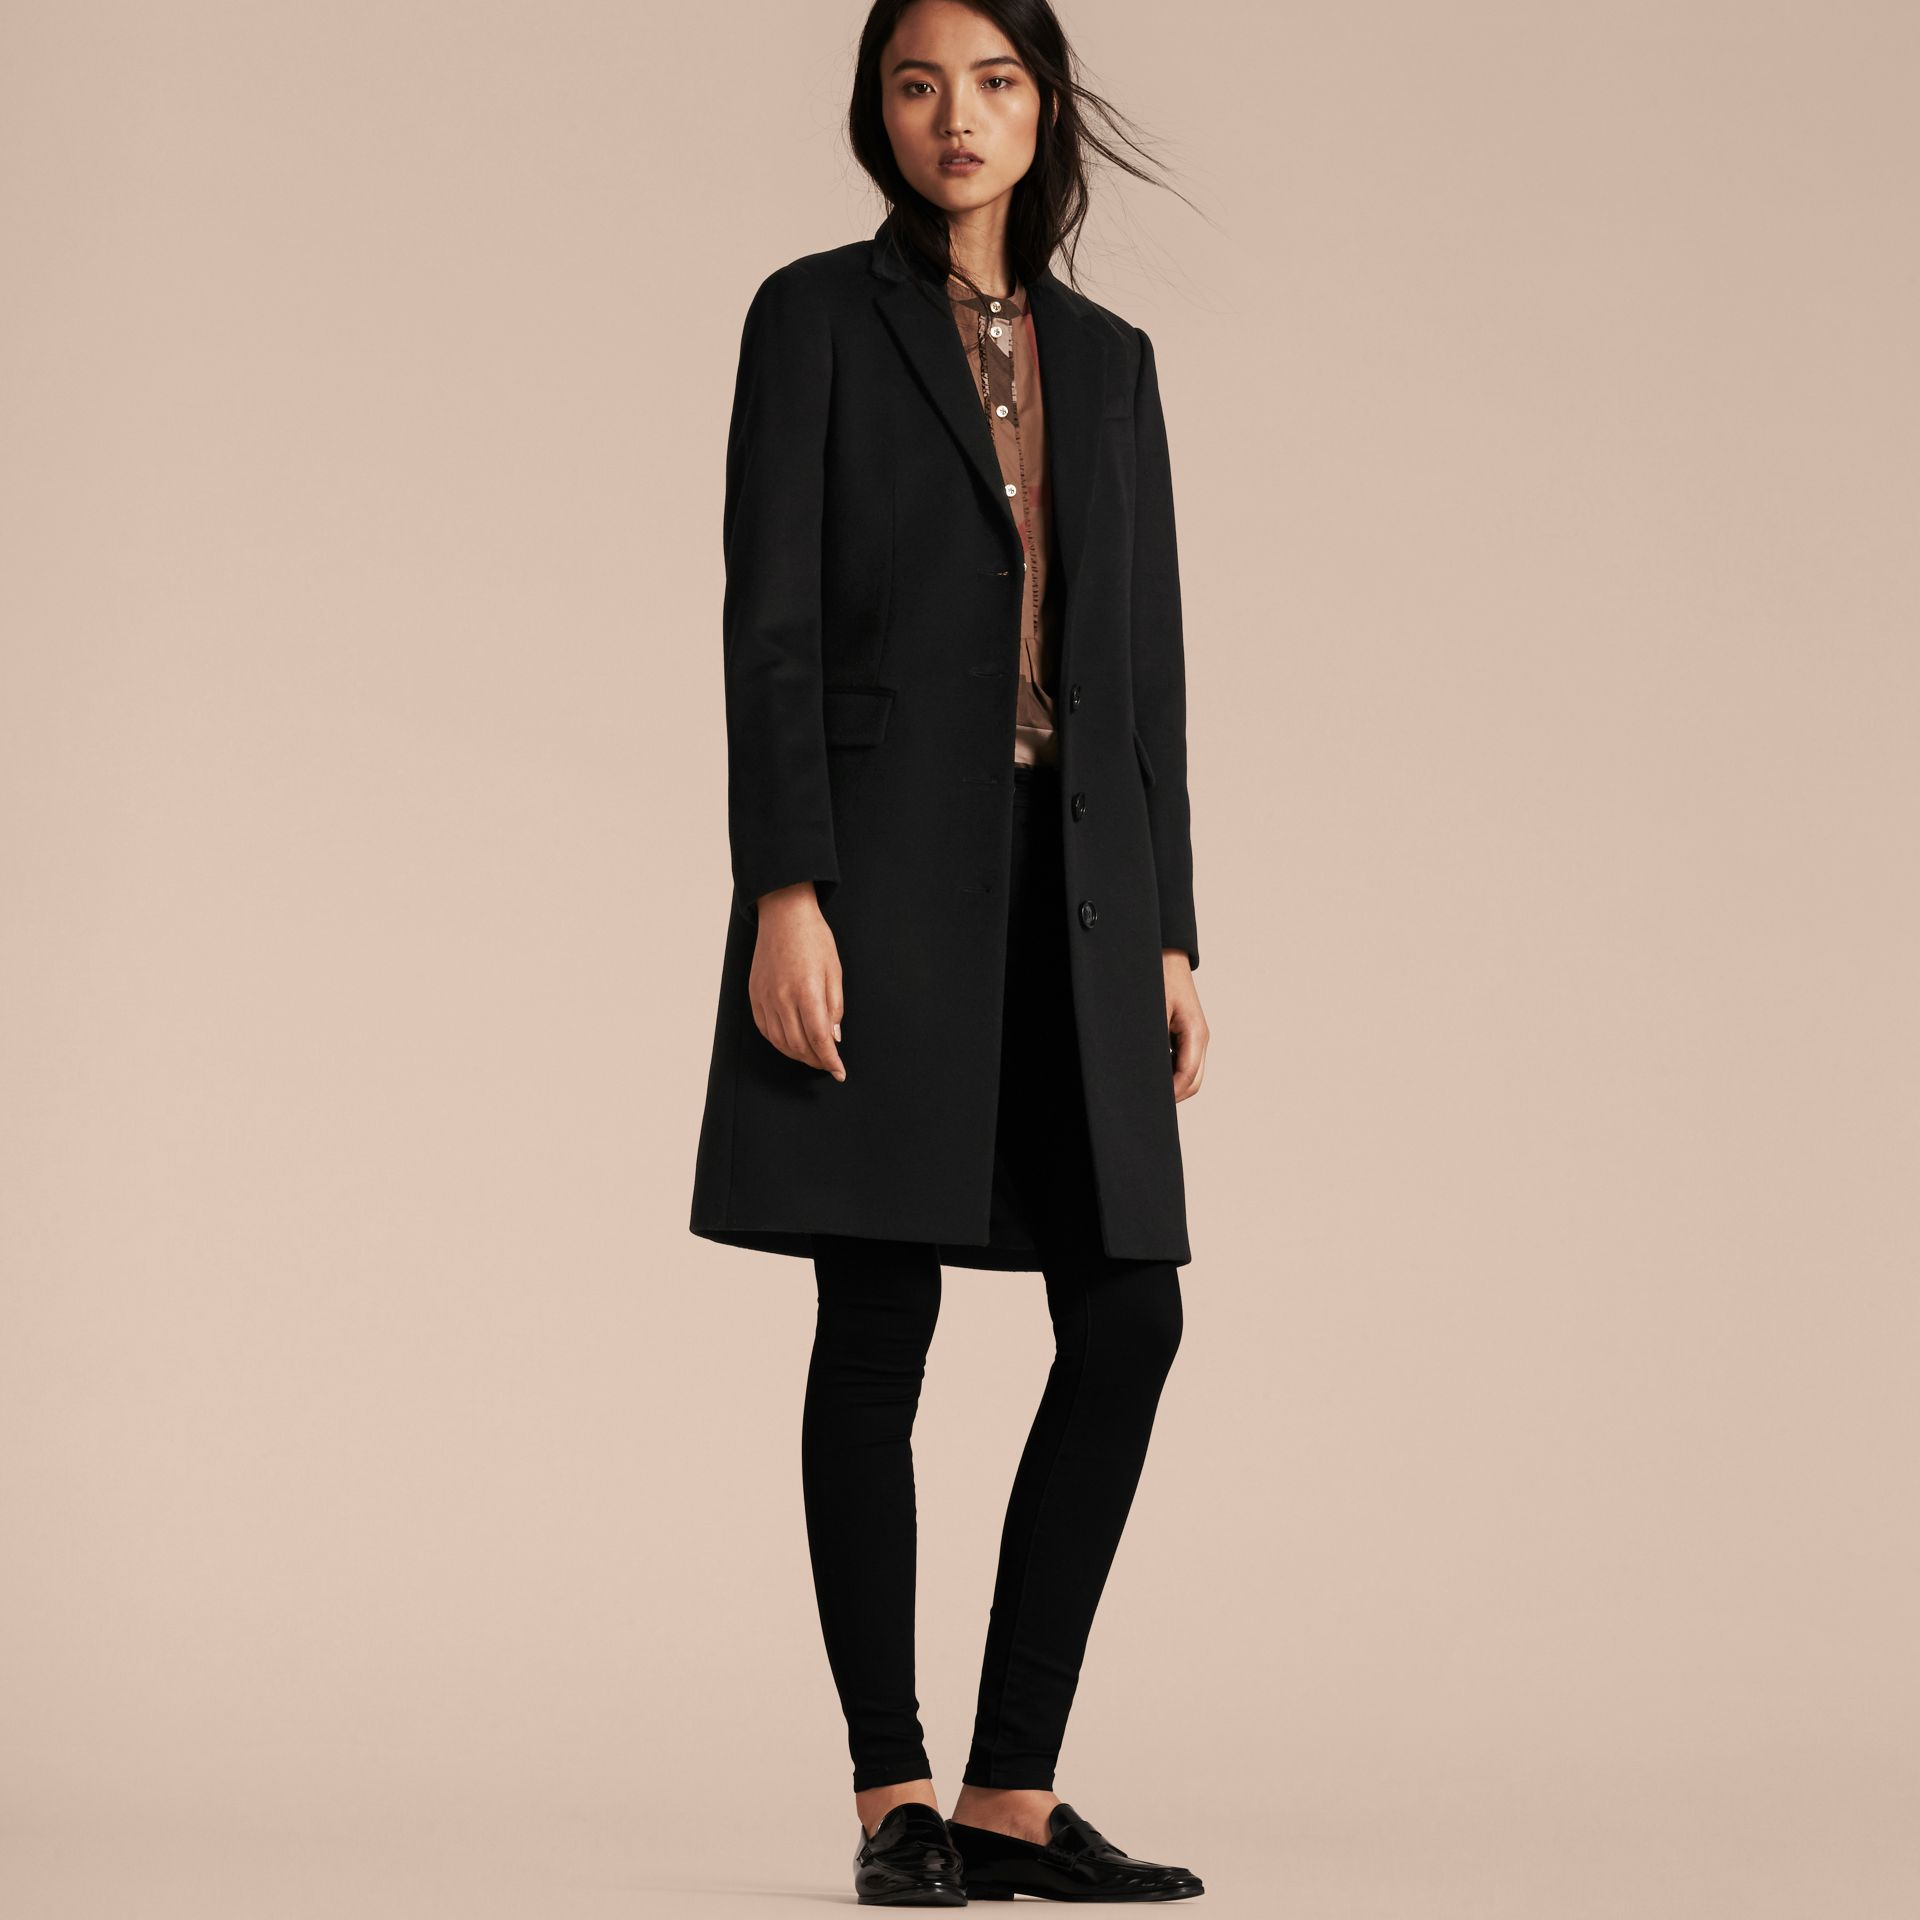 Black Tailored Wool Cashmere Coat Black - gallery image 6